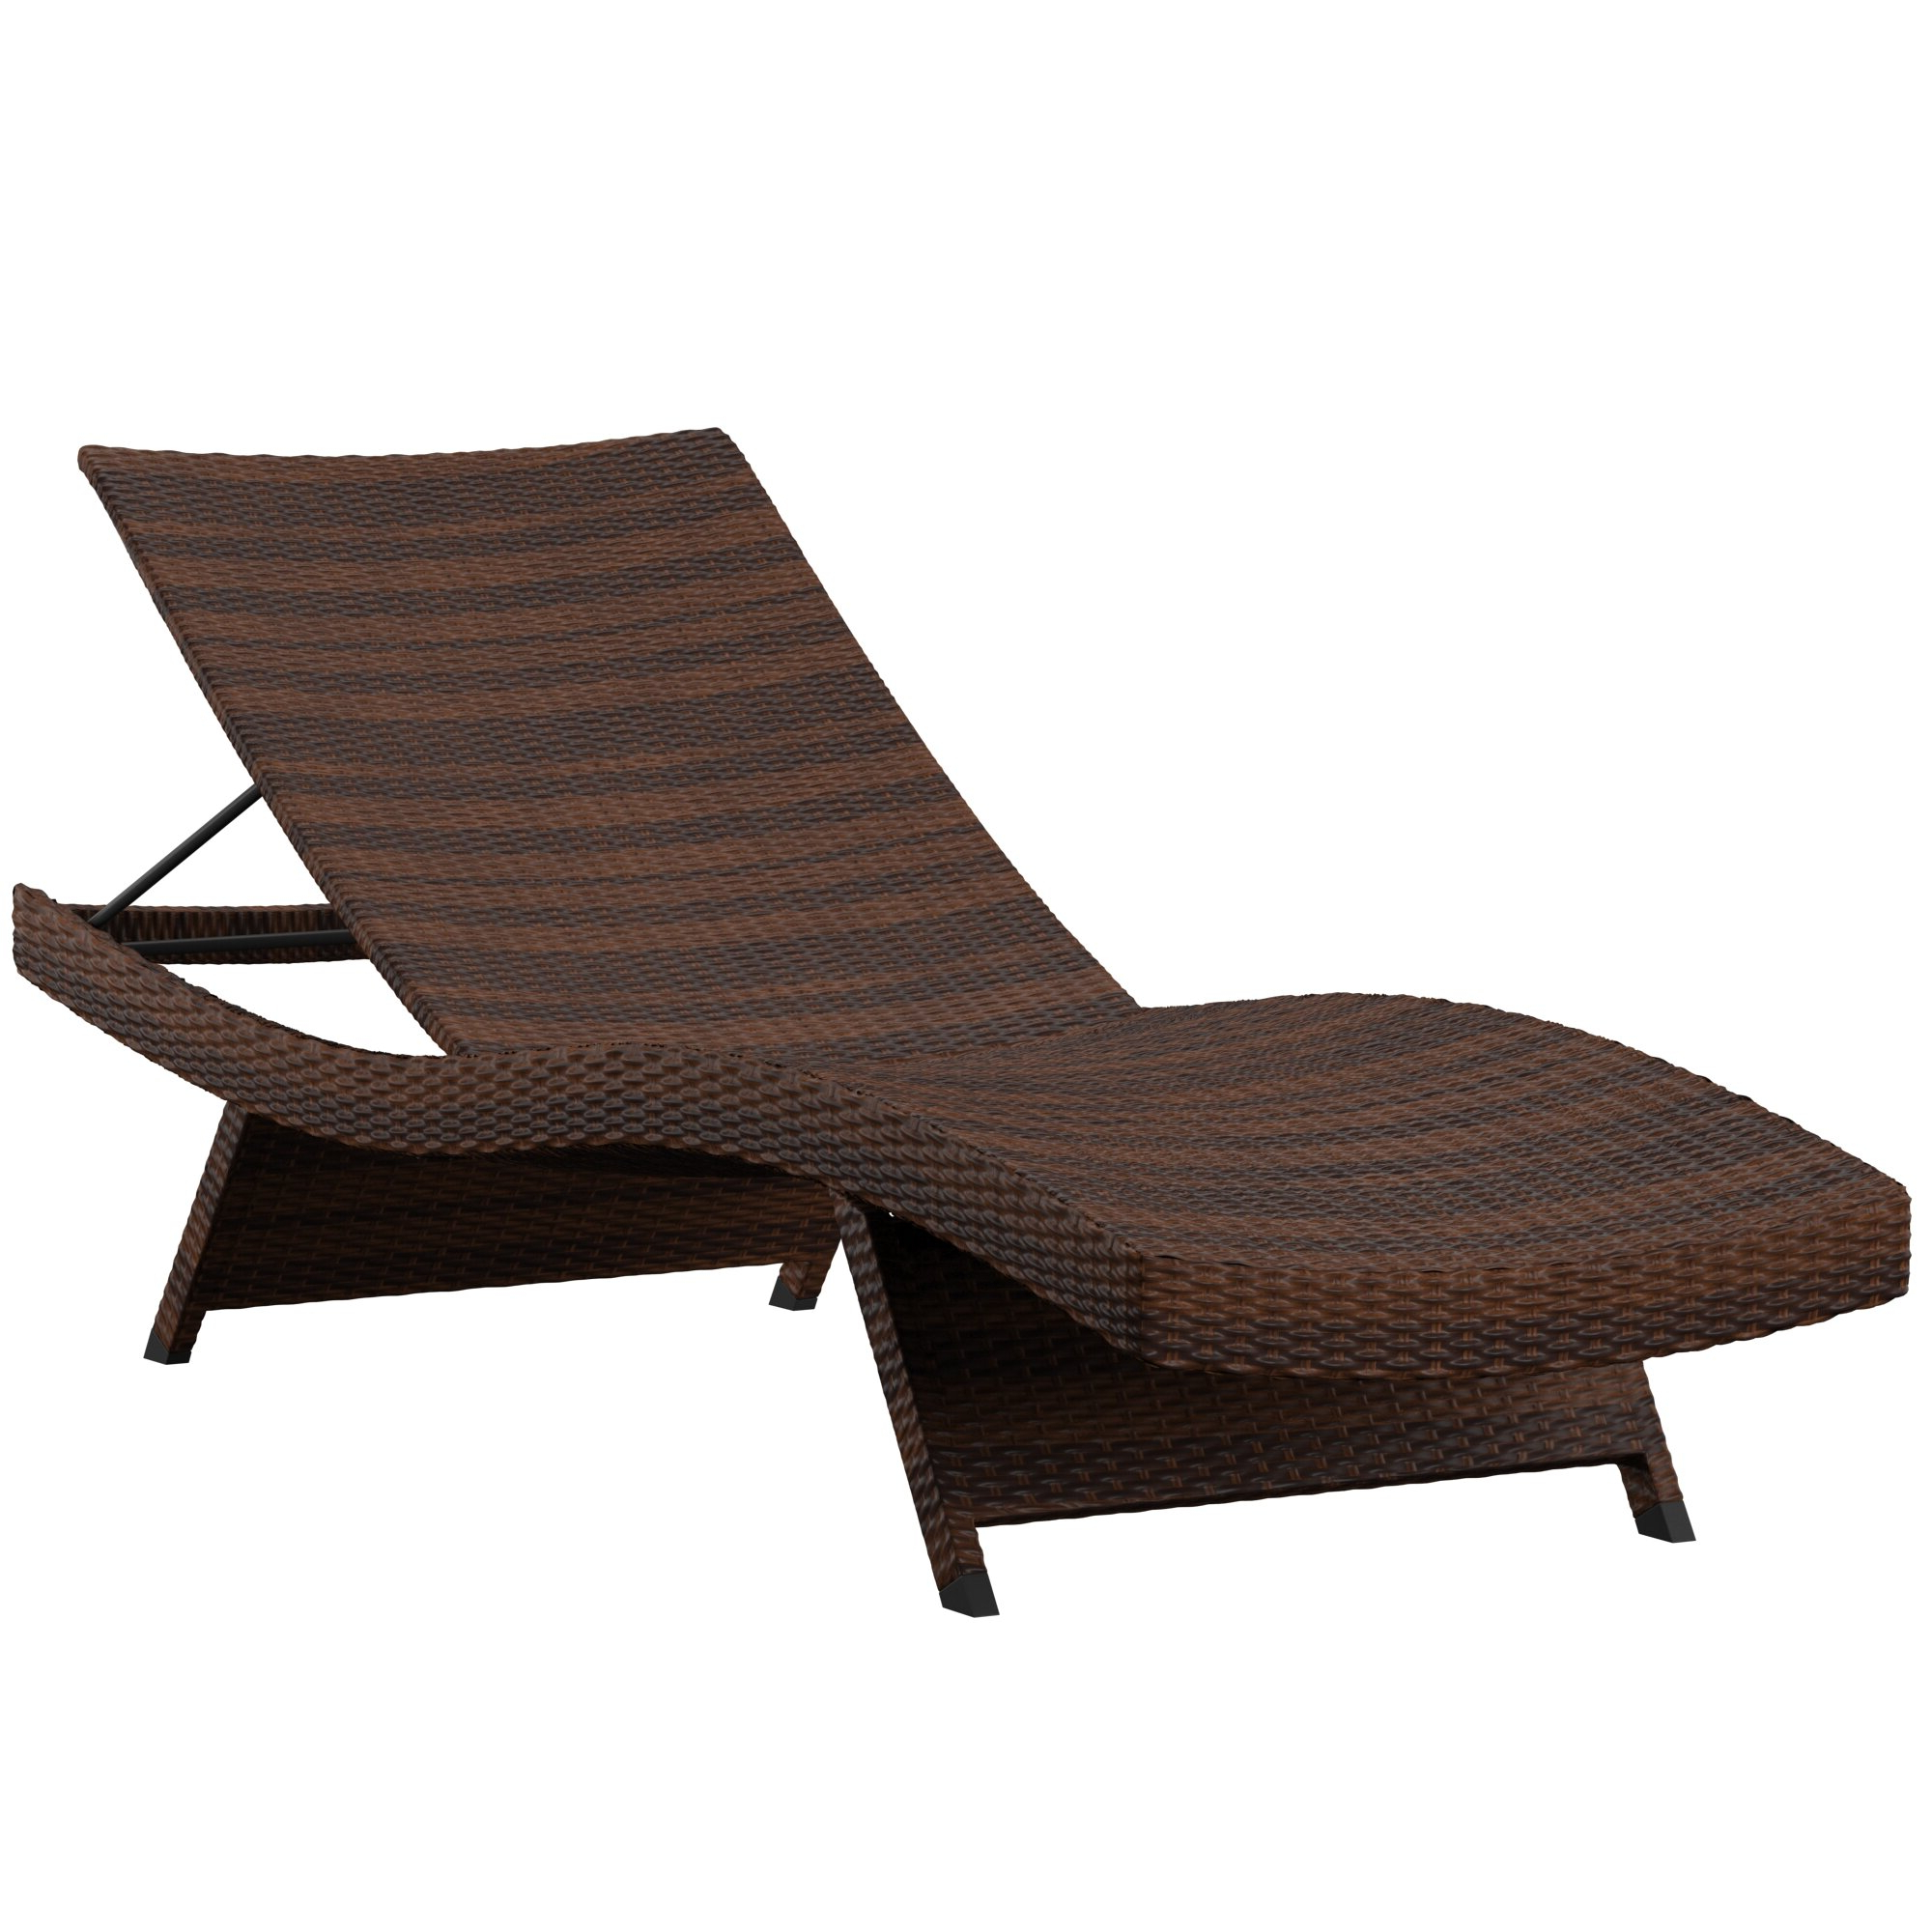 Wayfair For Eucalyptus Teak Finish Outdoor Chaise Loungers With Cushion (View 12 of 25)